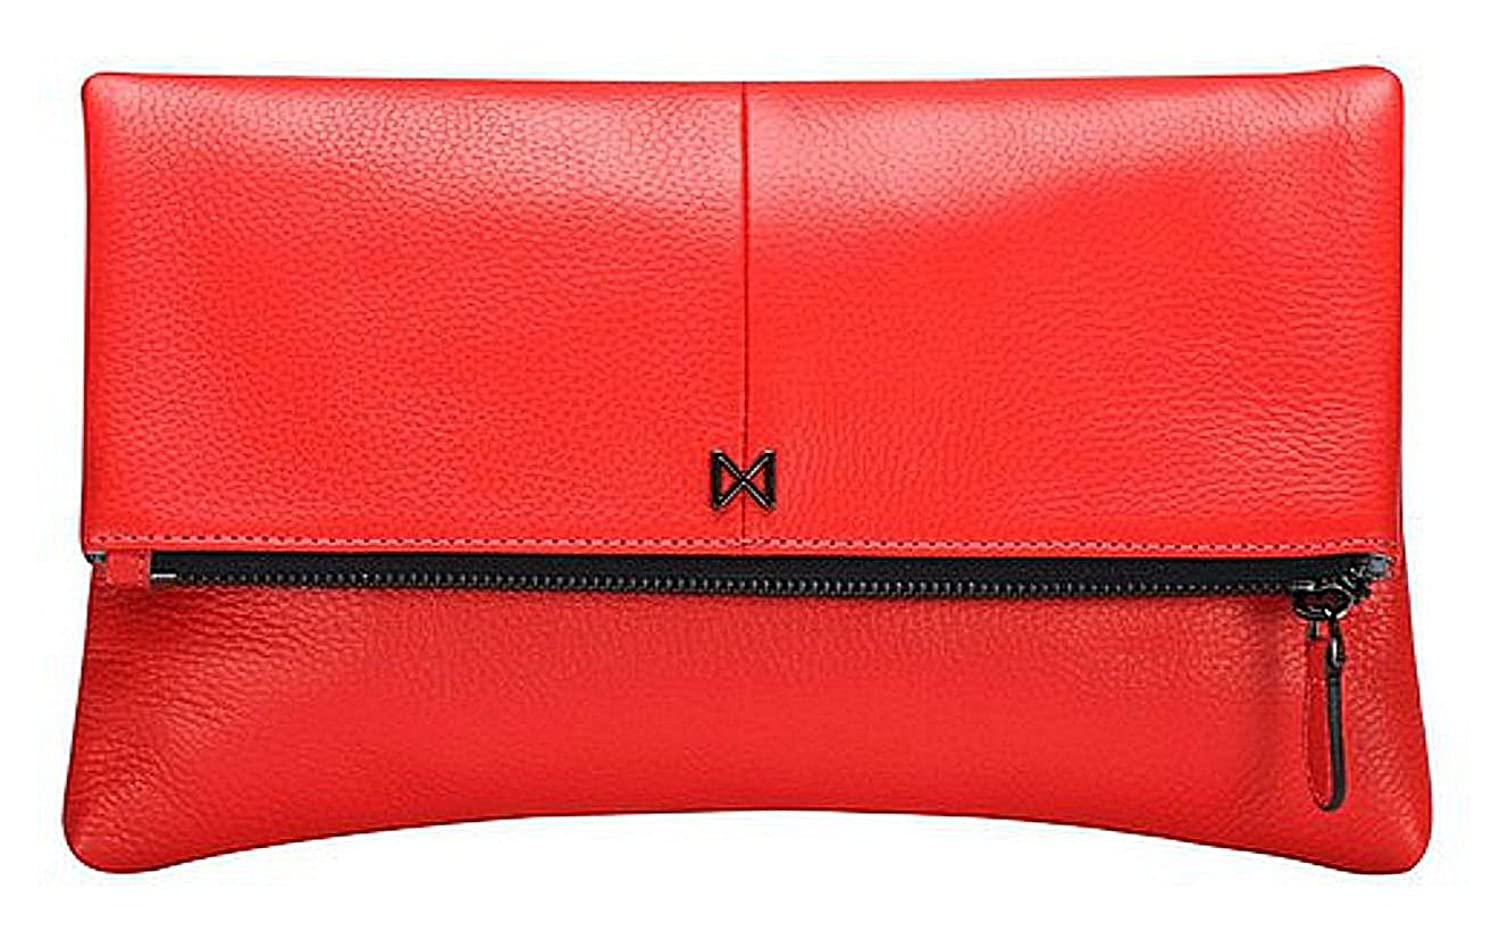 """Gemma"" Foldover, Pouch-Style Clutch Purse, Butter-soft, Pebble Leather, Gunmetal Zipper, Scarlet Red."